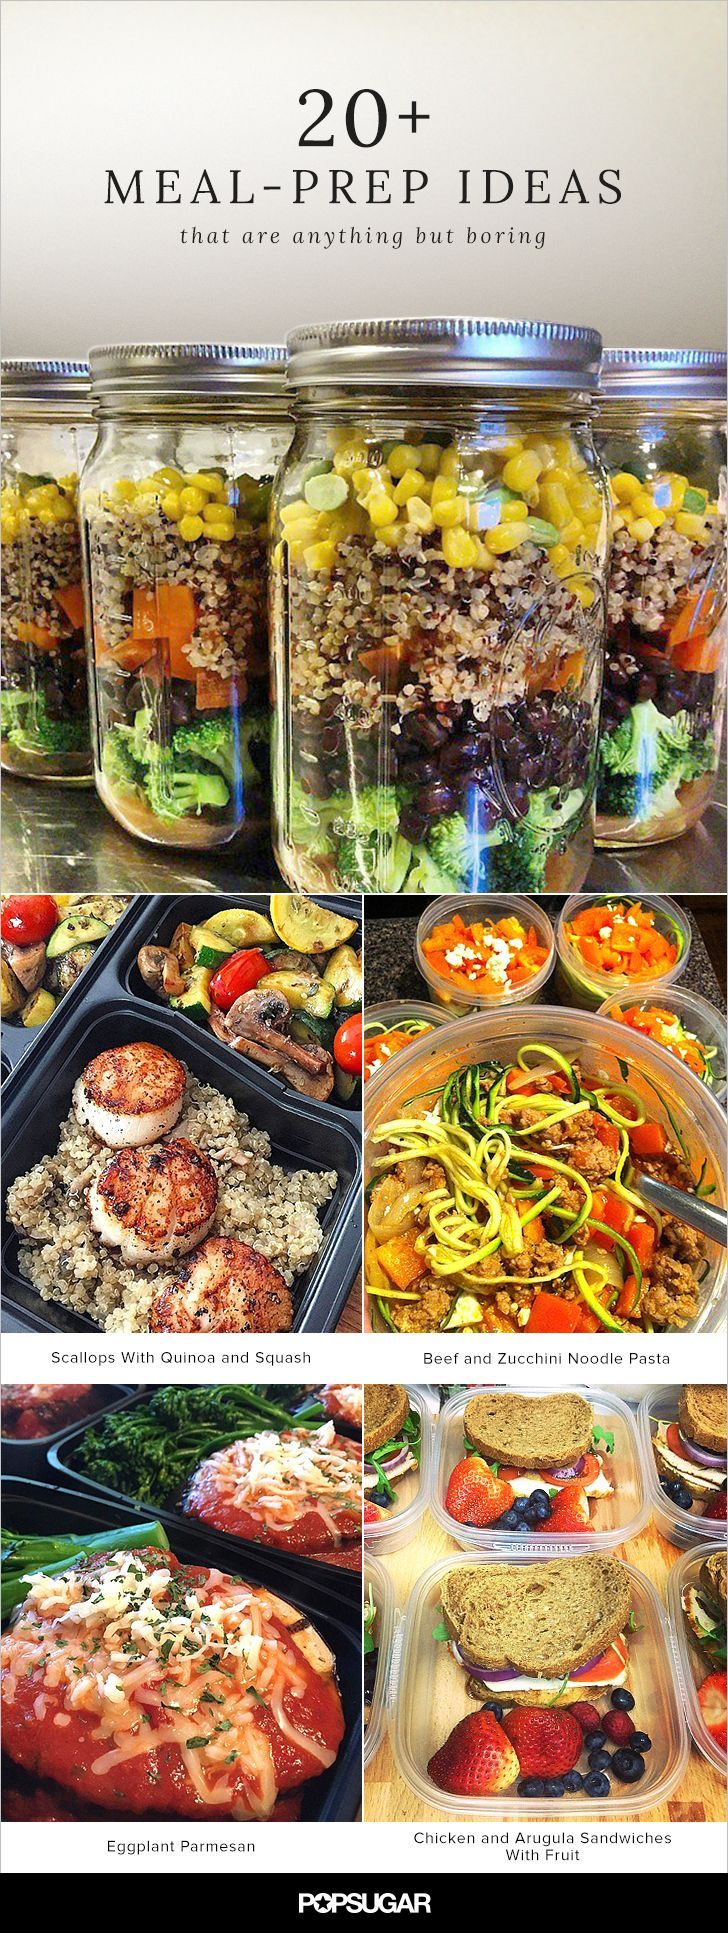 You might meal prep for a variety of reasons: to save money, eat healthier, or because you finally overdid it at the bodega by your office. No matter what the reason, meal prepping is now the norm and we're seeing some pretty delicious — and adorable — meal inspirations coming to fruition. Make it a personal challenge to whip up one of these recipes per week and see how much money and how many calories you save by doing so.